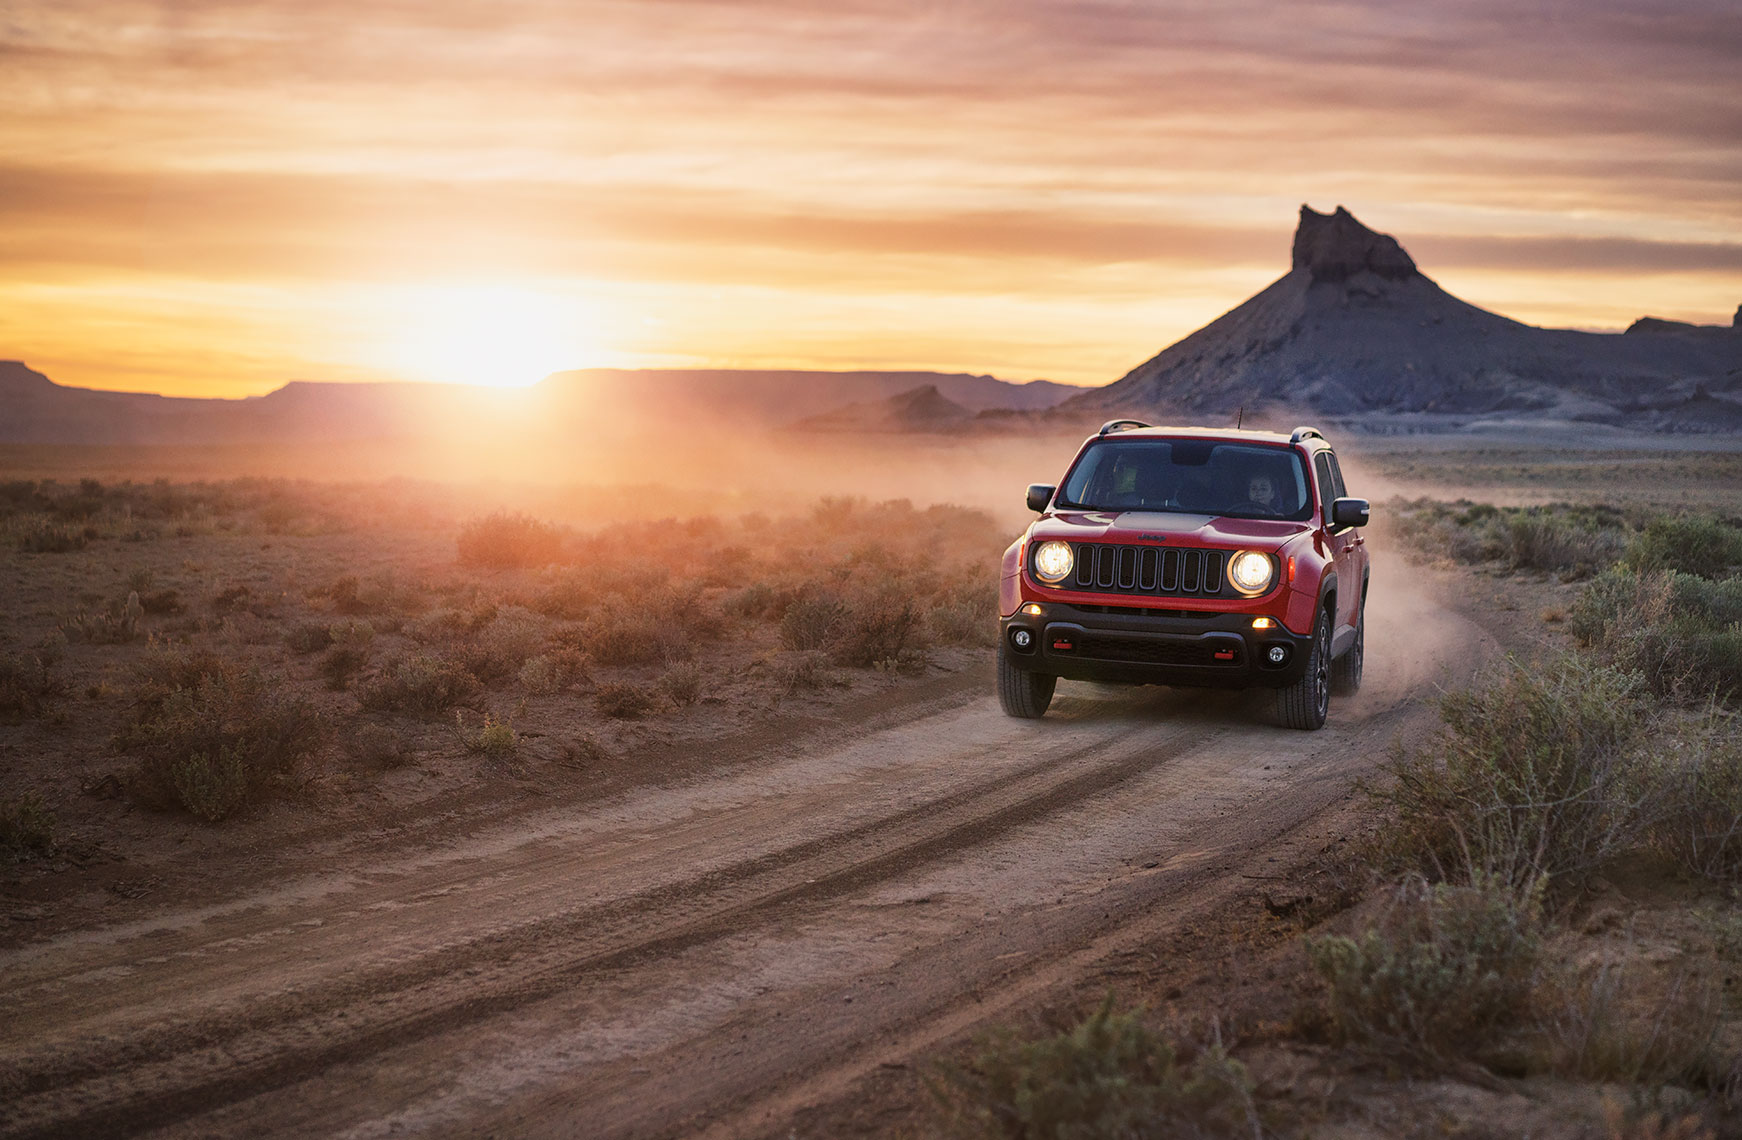 jeep_renegade_dusty_sunset